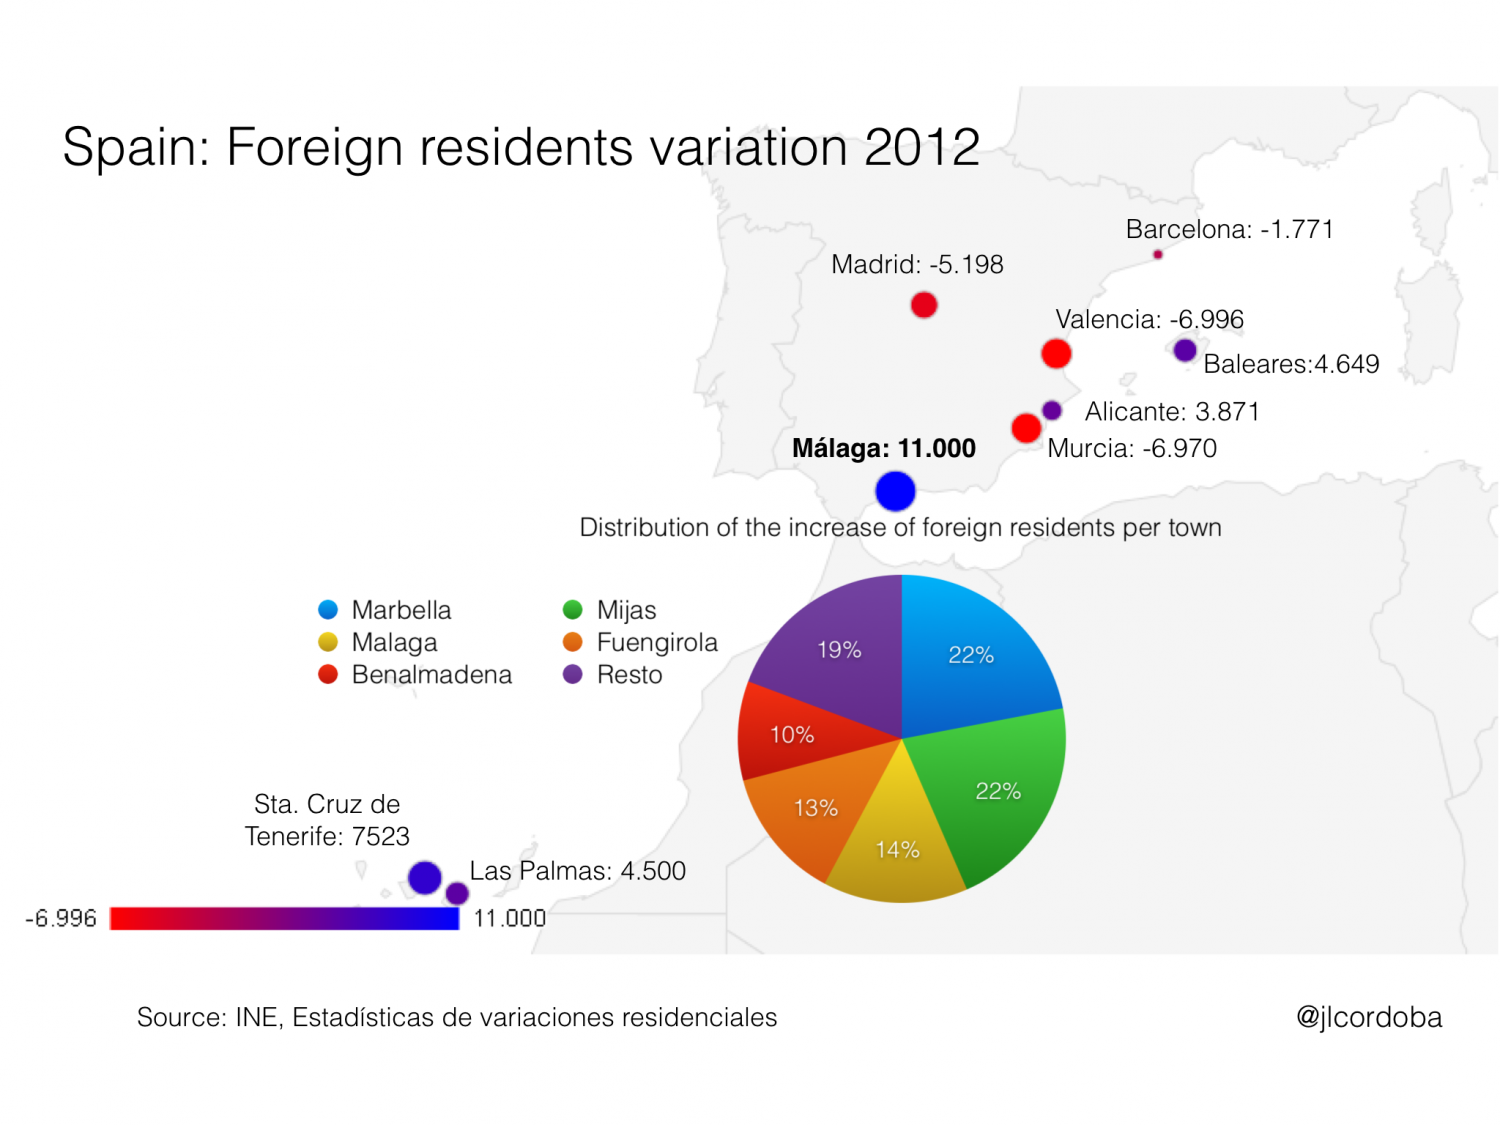 Spain Foreign residents variation 2012 Infographic